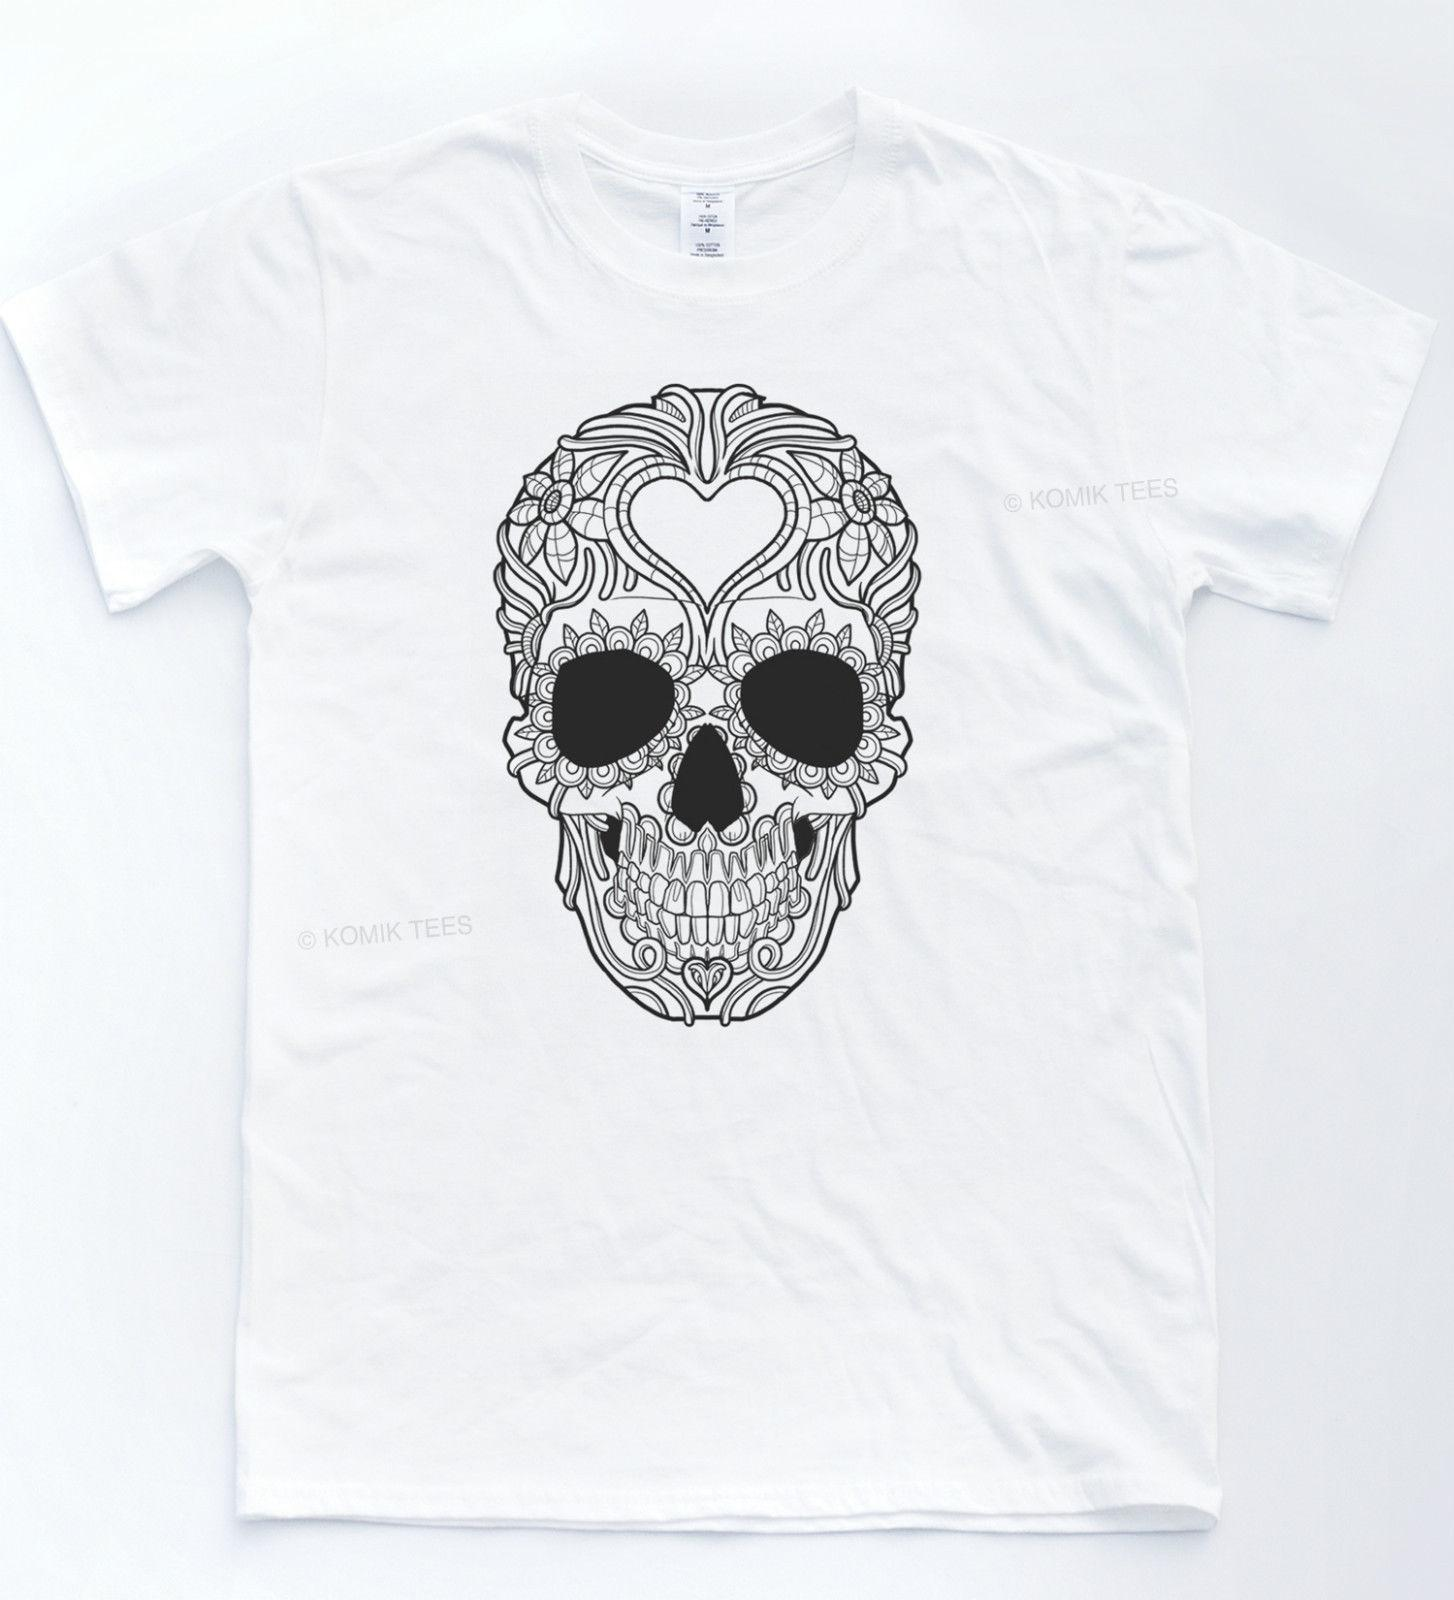 47a0568e Mexican Sugar Skull Tee Tattoo Henna Indie T Shirt Hipster Vintage Retro  Top Cool Casual Pride T Shirt Men Unisex New Fashion Trendy T Shirts  Offensive ...